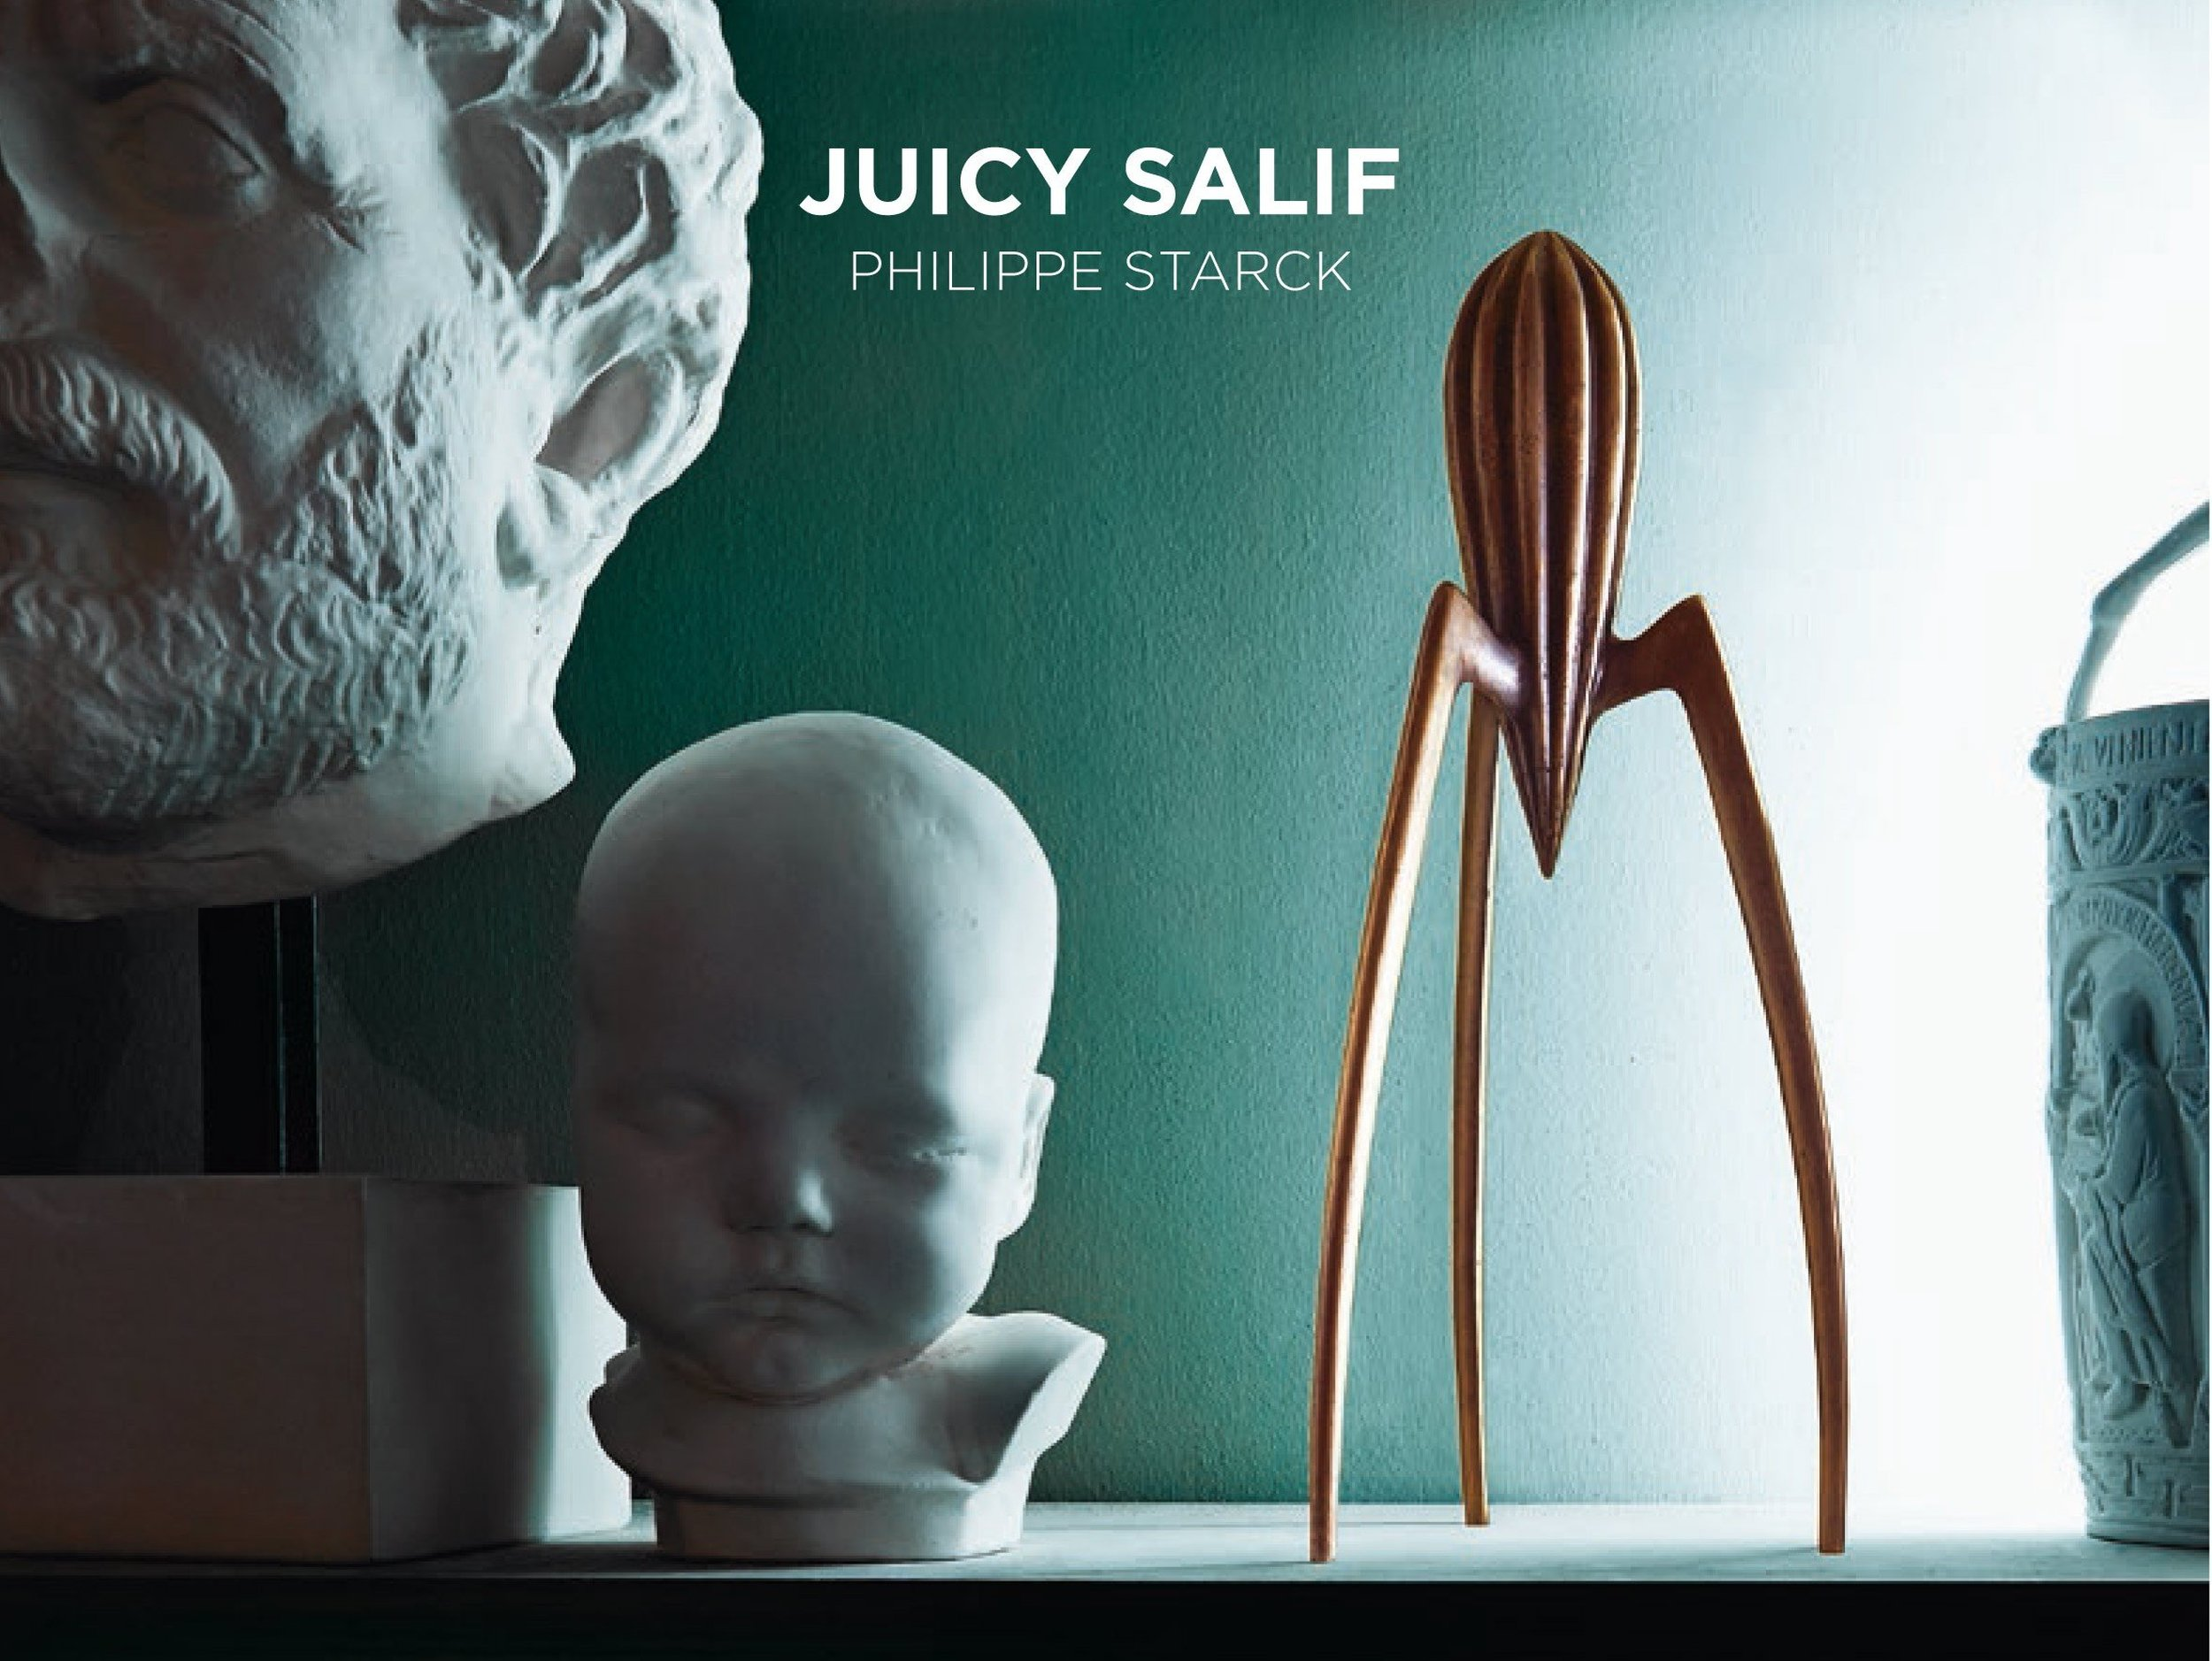 juicy salif citrus squeezer in cast bronze limited edition officina alessi. Black Bedroom Furniture Sets. Home Design Ideas